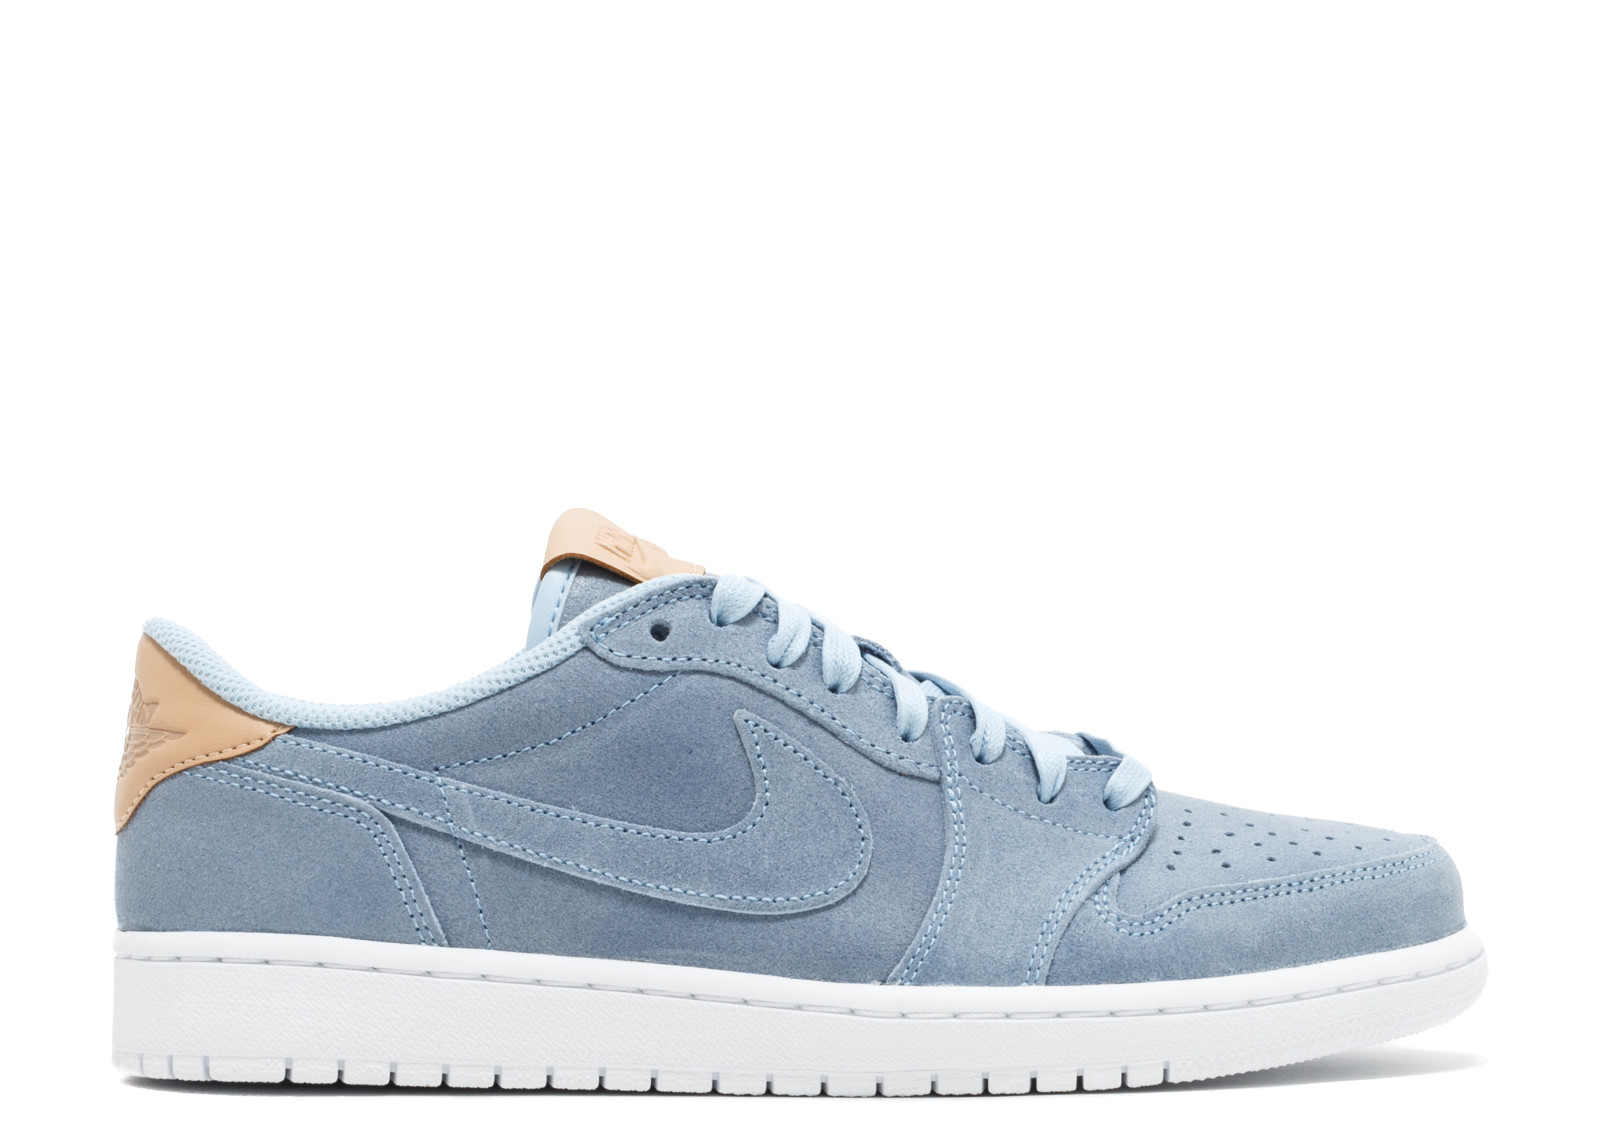 new style c37ba bb469 ... discount code for nike mens air jordan 1 retro low og premium ice blue  white vachetta